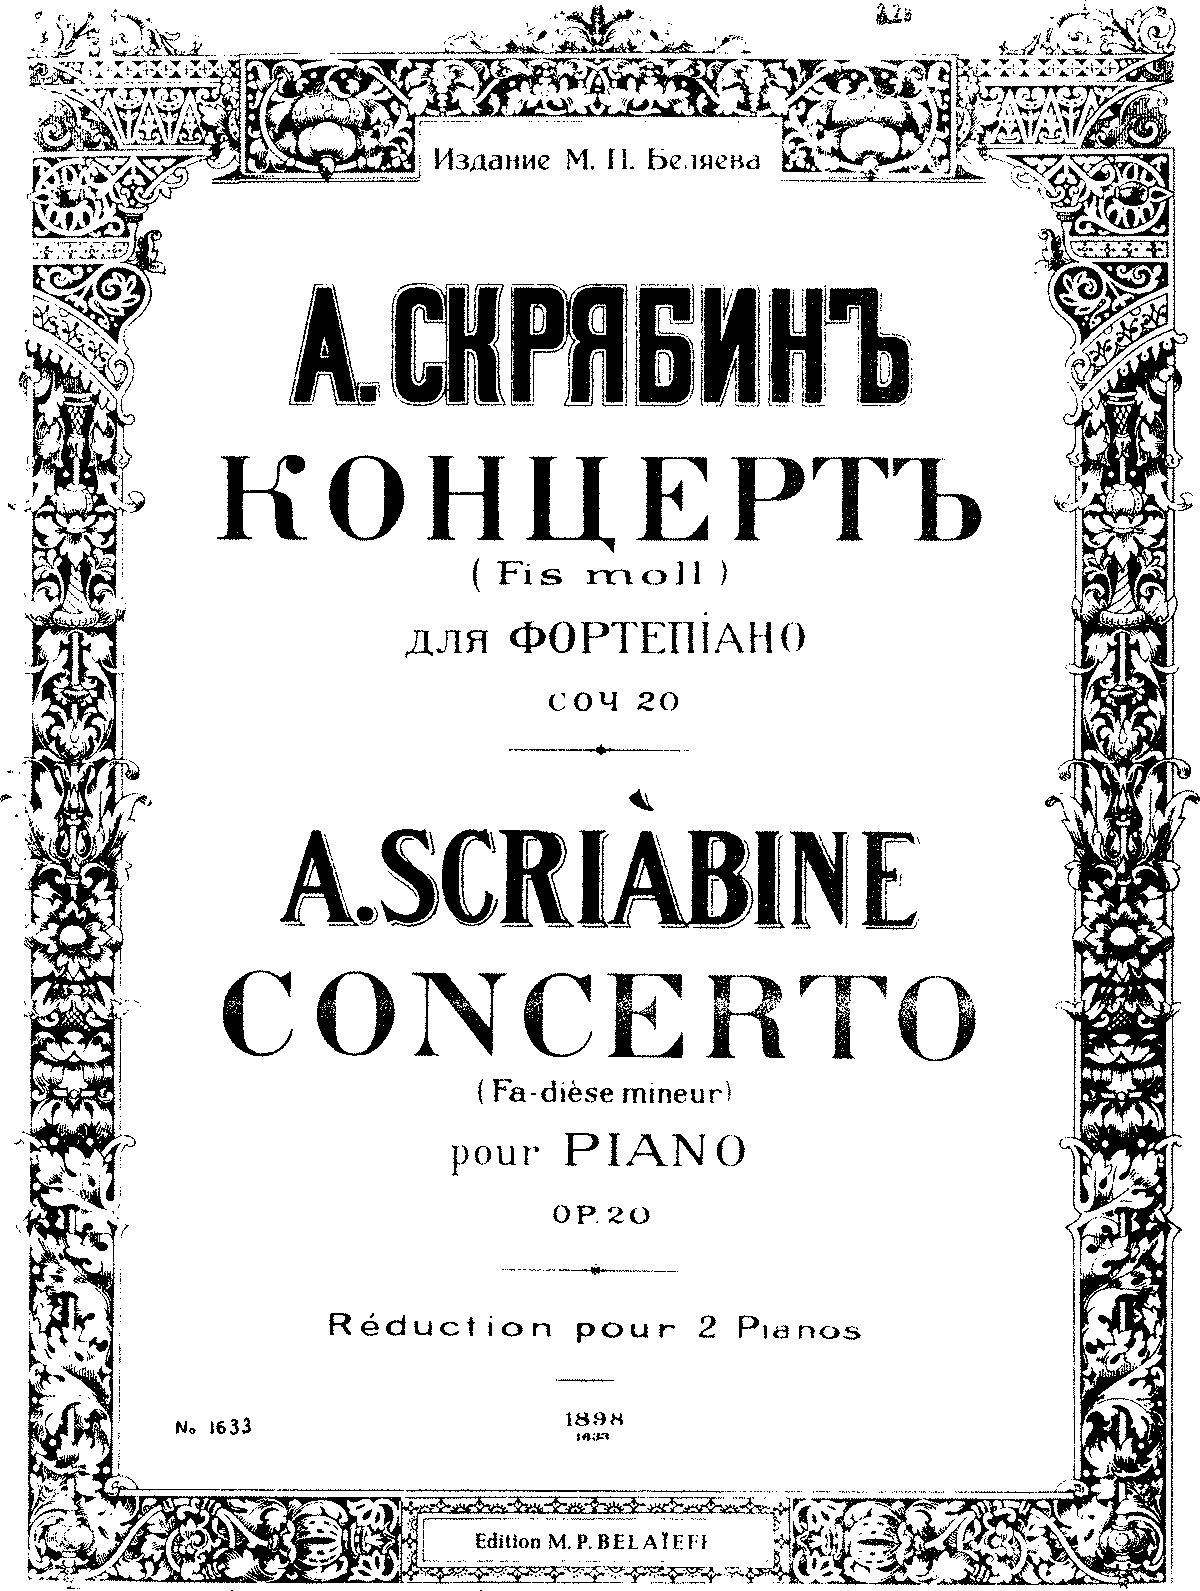 Scriabin - Concerto - Two pianos - Belaieff.pdf